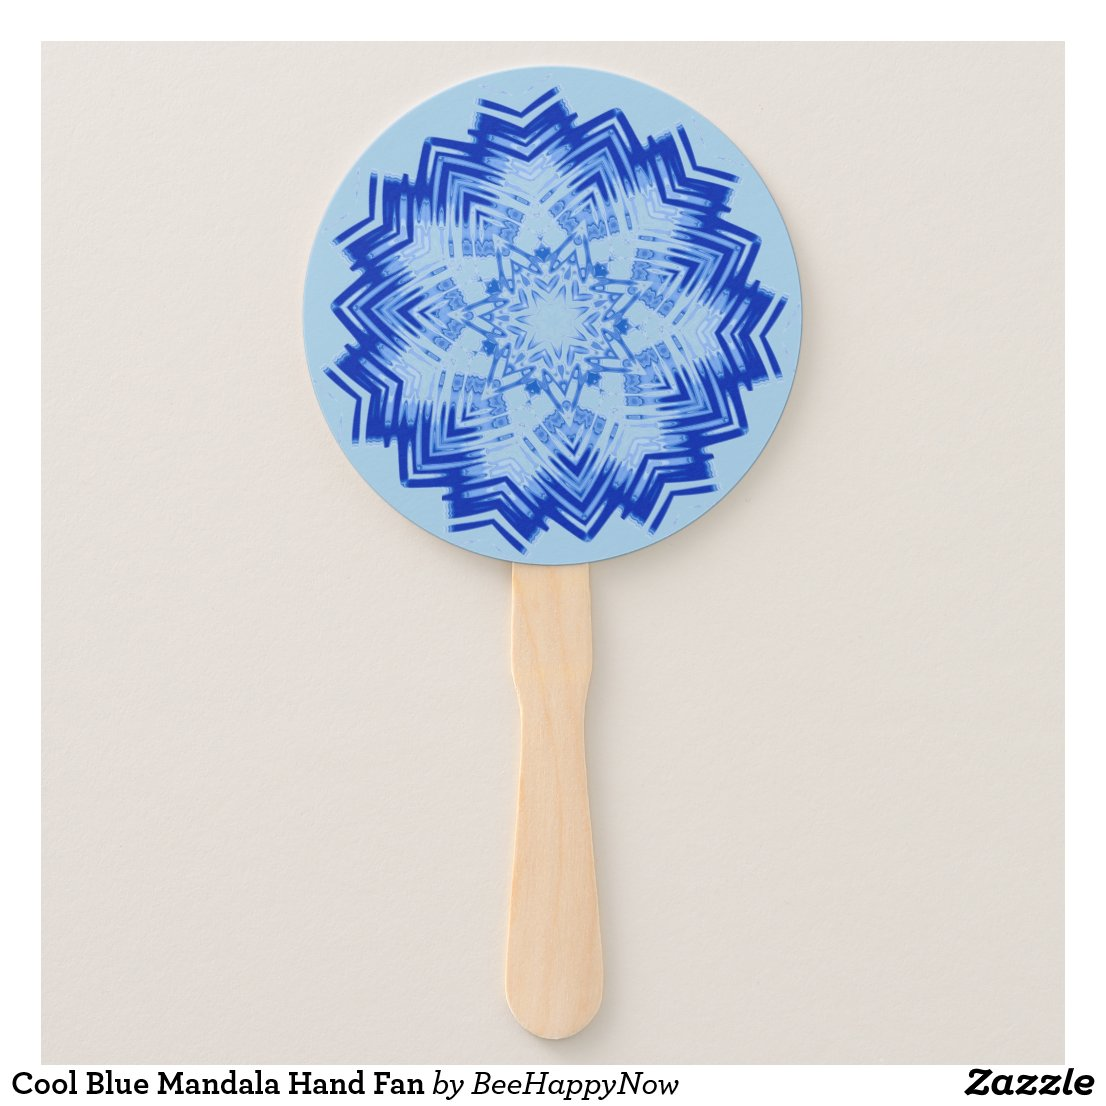 Cool Blue Mandala Hand Fan